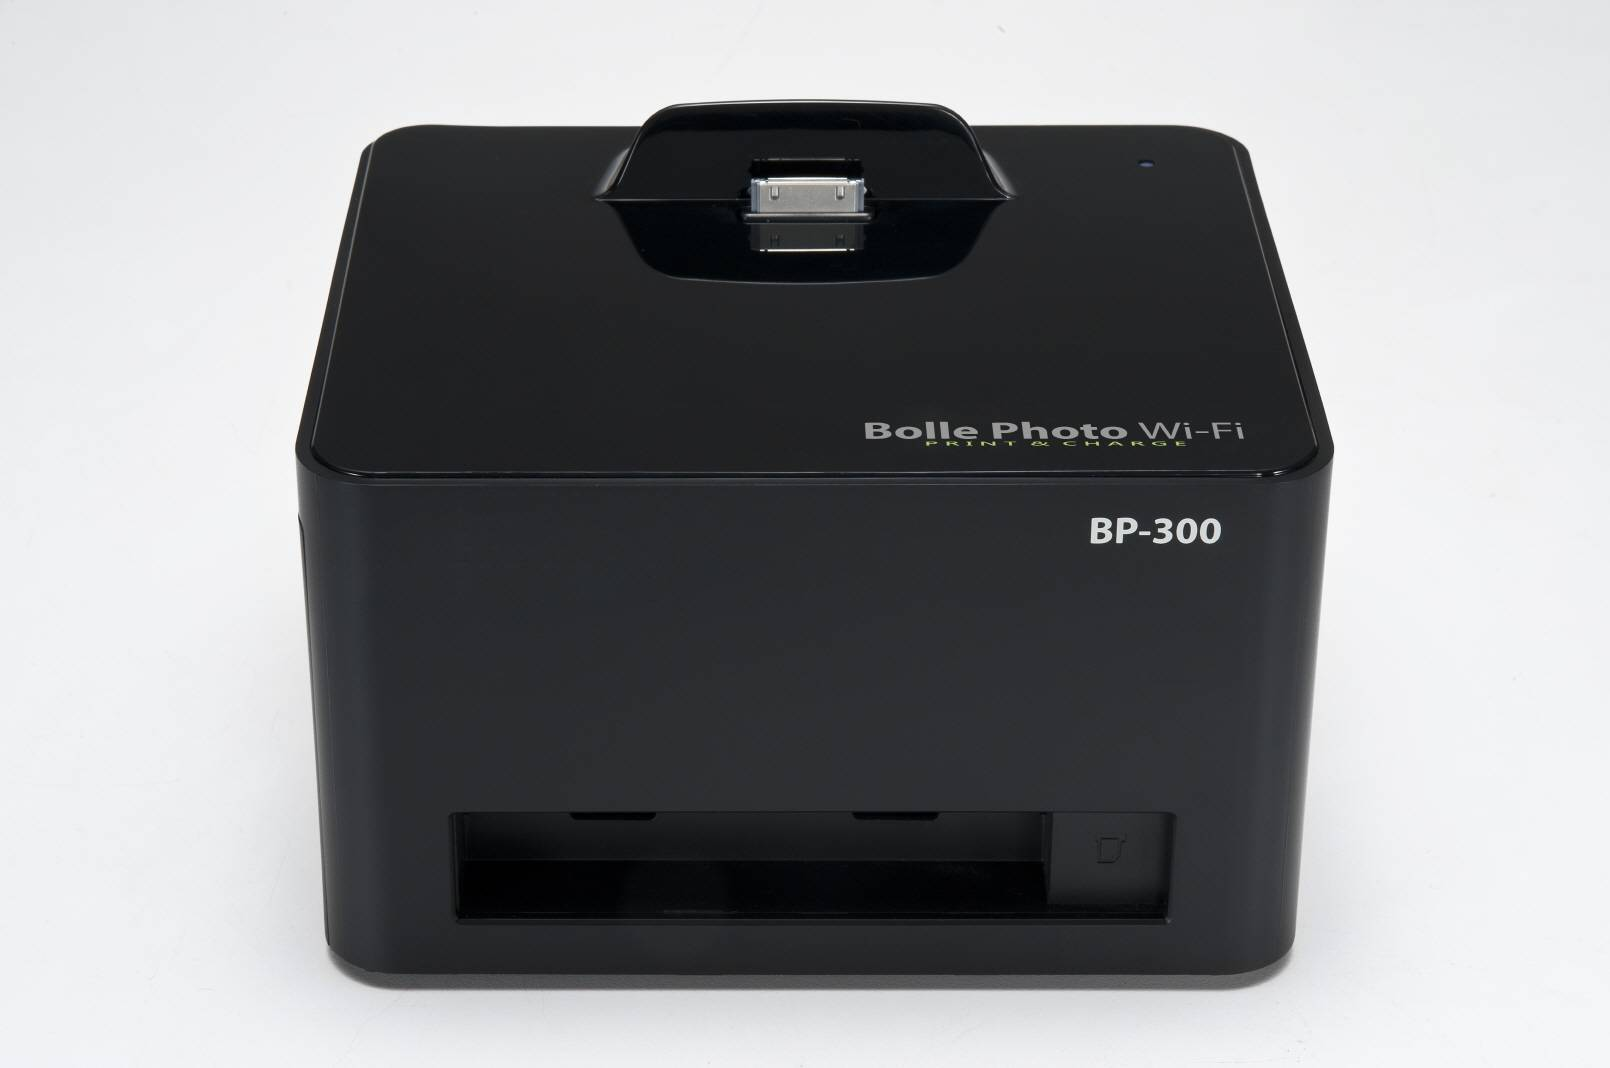 Bolle Photo, Compact Wi-Fi Photo Printer for Apple & Android